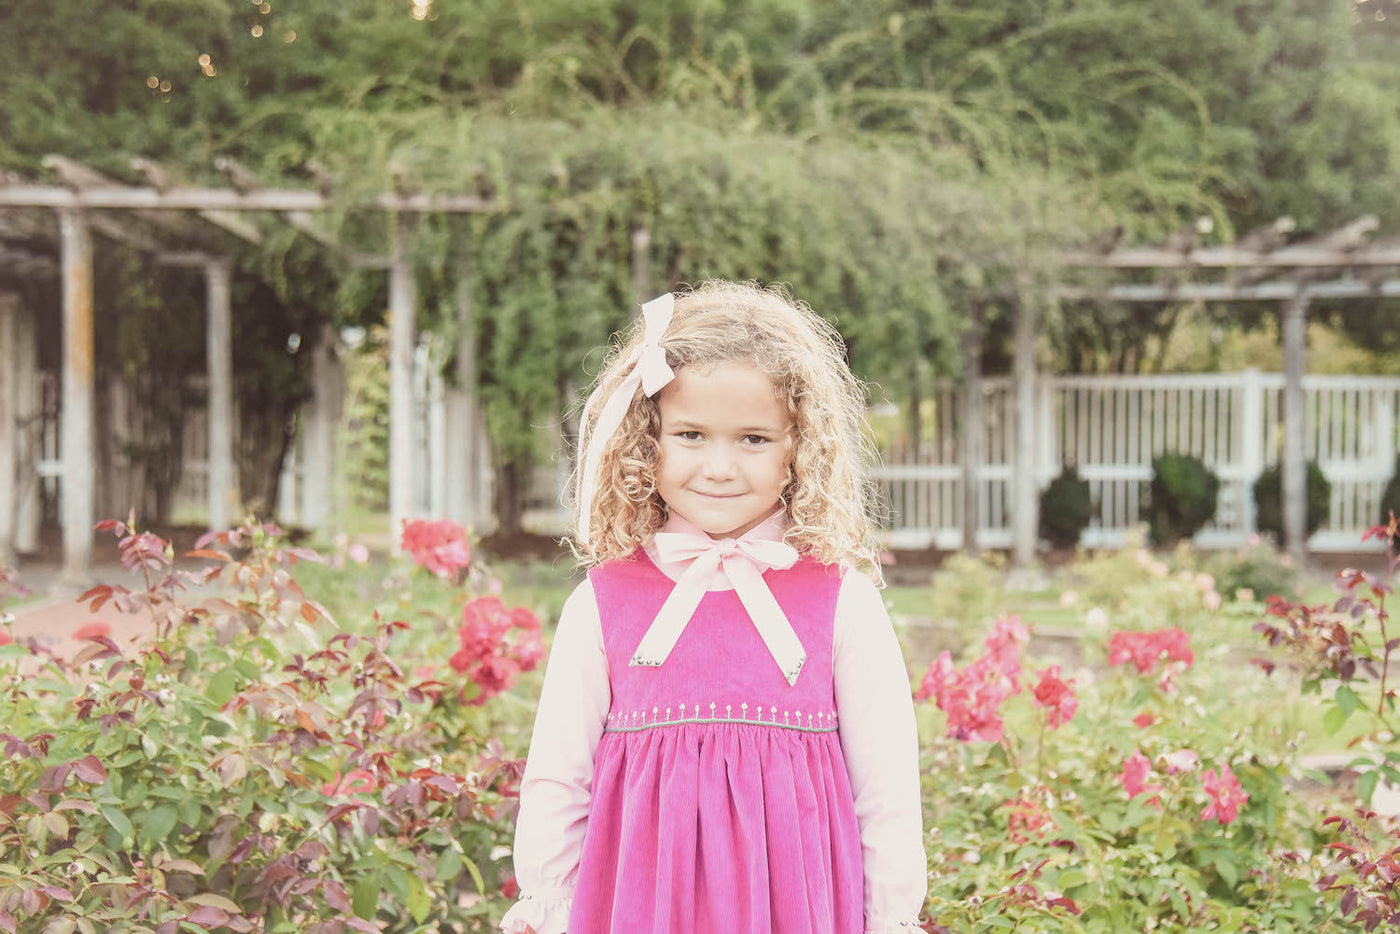 autum winter handmade classic chic children's smocked dresses